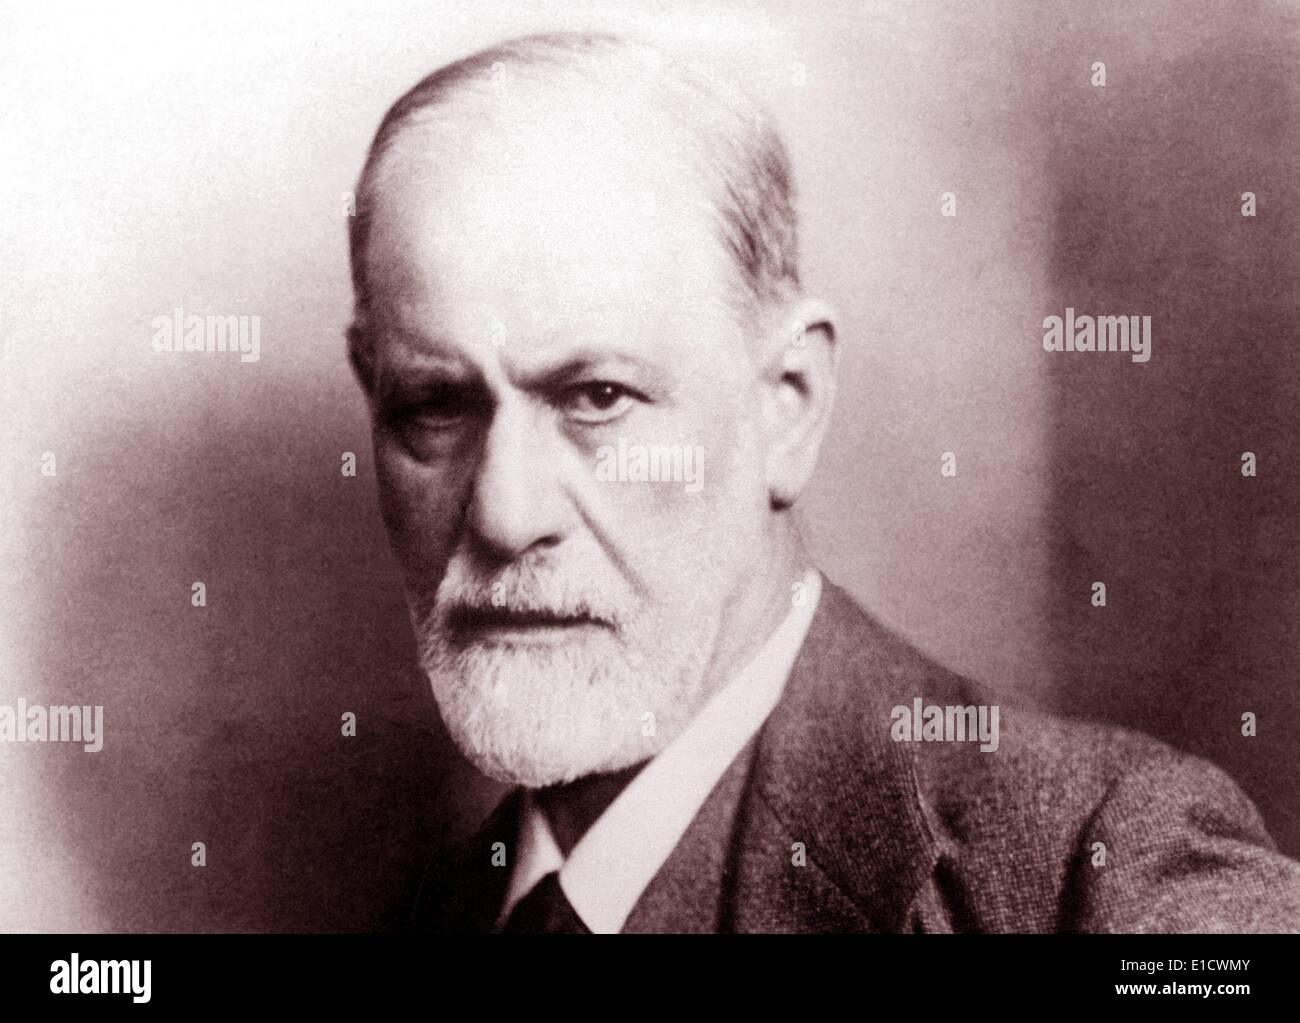 Sigmund Freud (1856-1939). Austrian neurologist, known as the founding father of psychoanalysis circa 1922 - Stock Image